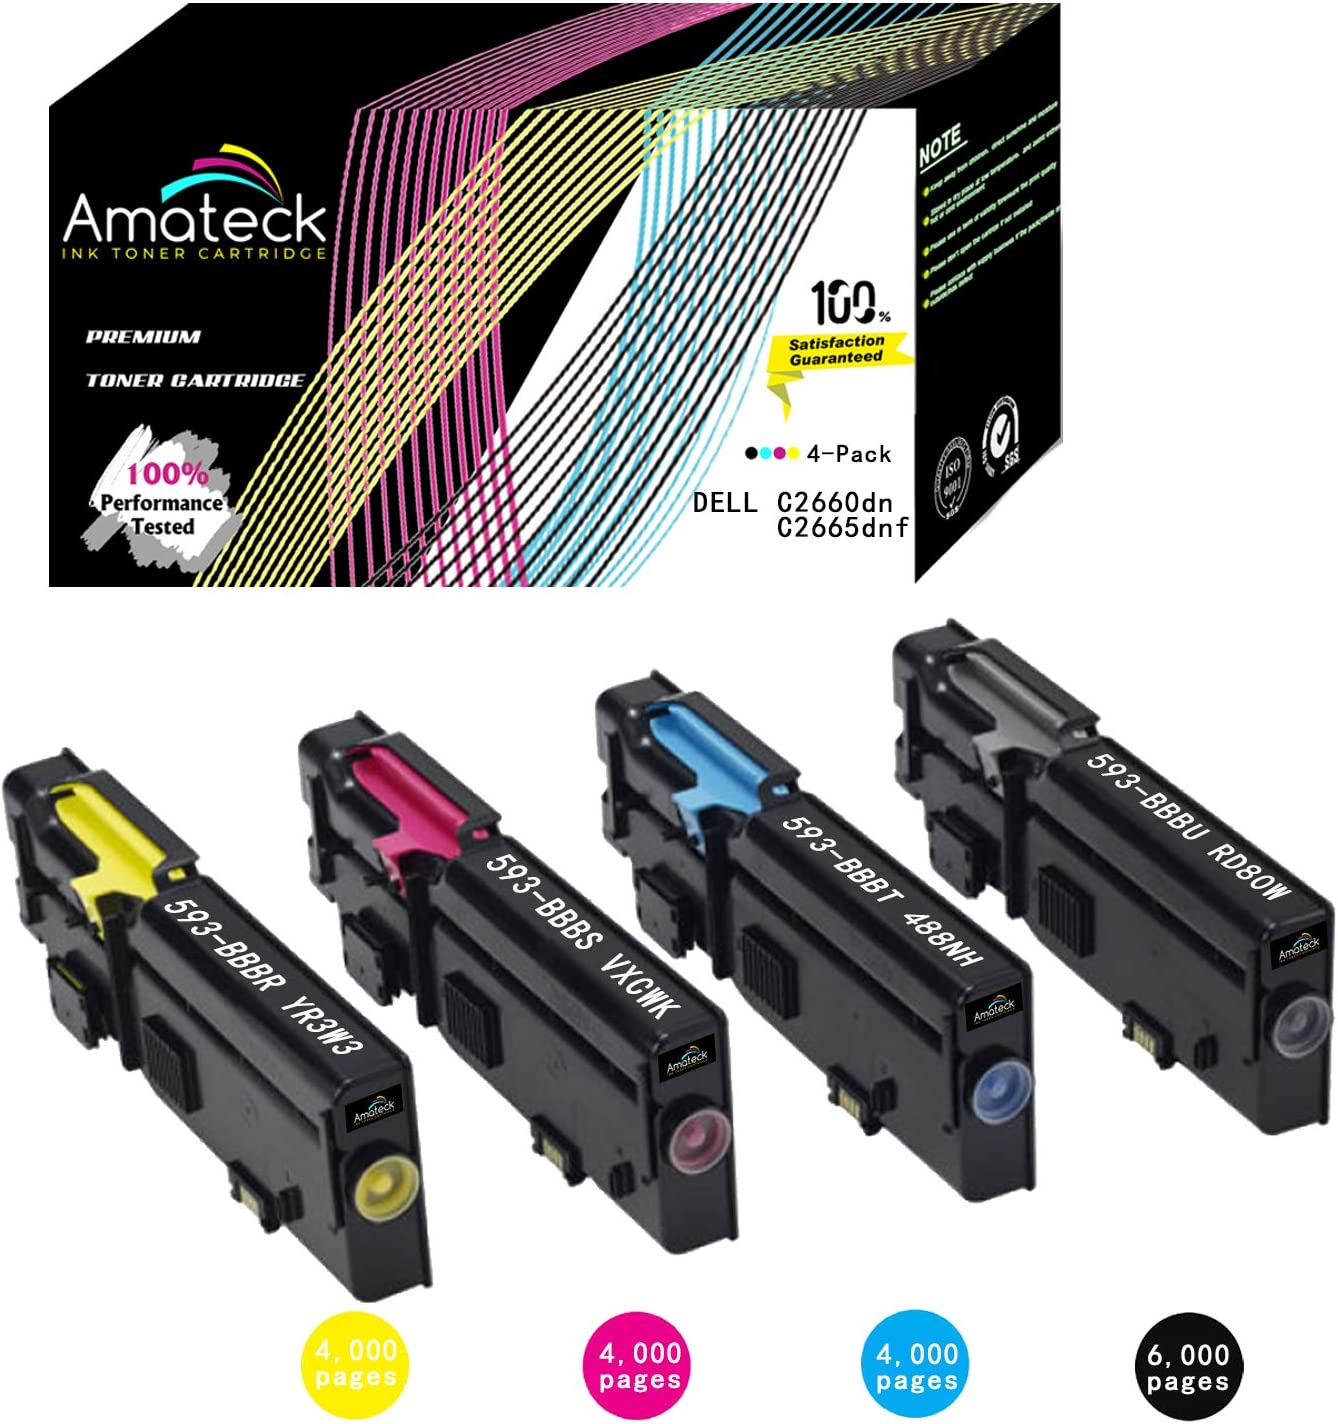 Amateck Compatible 4 Pack Toner Cartridge for Dell C2660dn C2665dnf Printers, Black Cyan Magenta Yellow, 593-BBBU 593-BBBT 593-BBBS 593-BBBR